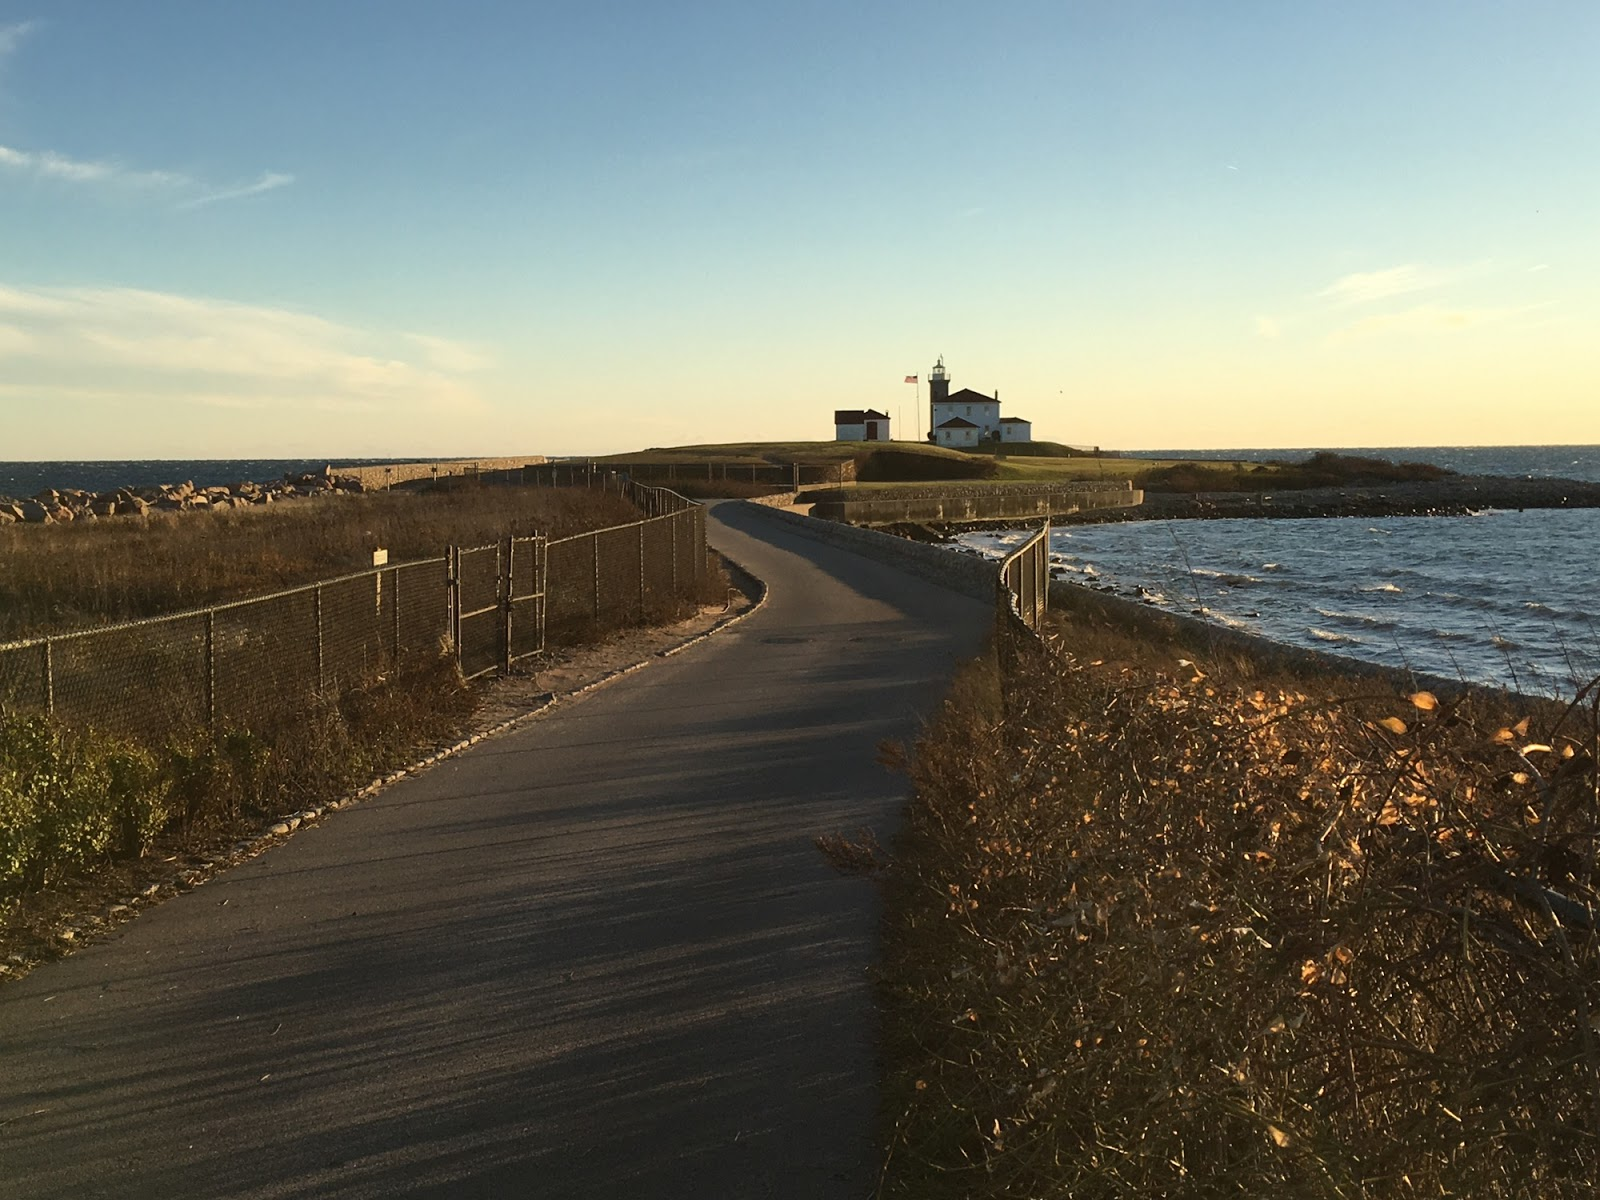 Gravel beach 2017 promontory that extends south from watch hill into block island sound this little point of land must largely isolate misquamicut beach to the east from nvjuhfo Image collections